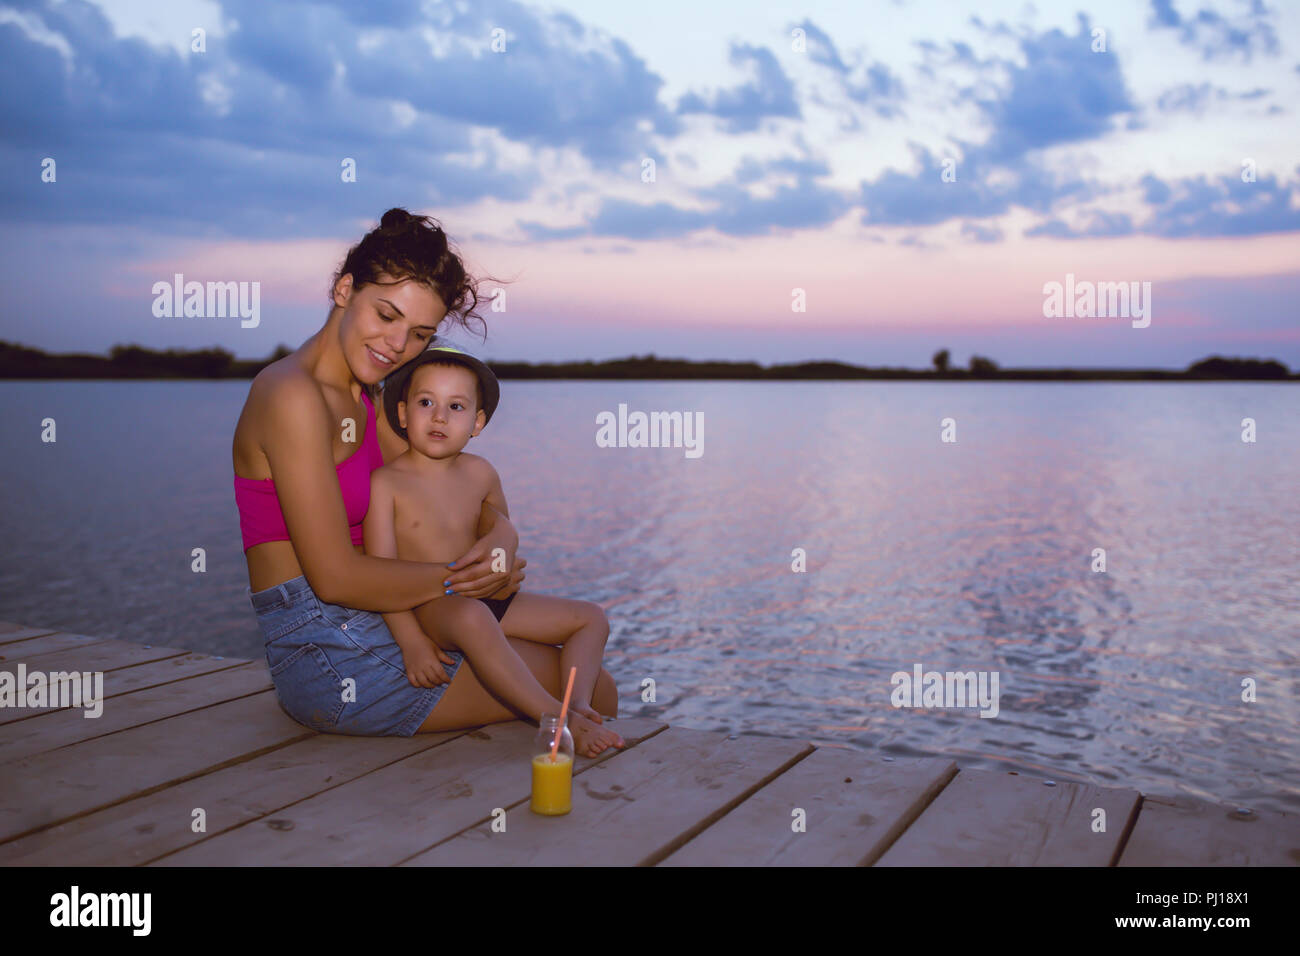 Happy mother with her son enjoy the beautiful sunset while sitting on a wooden pier by the river. Positive human emotions, feelings, joy. Happy family - Stock Image